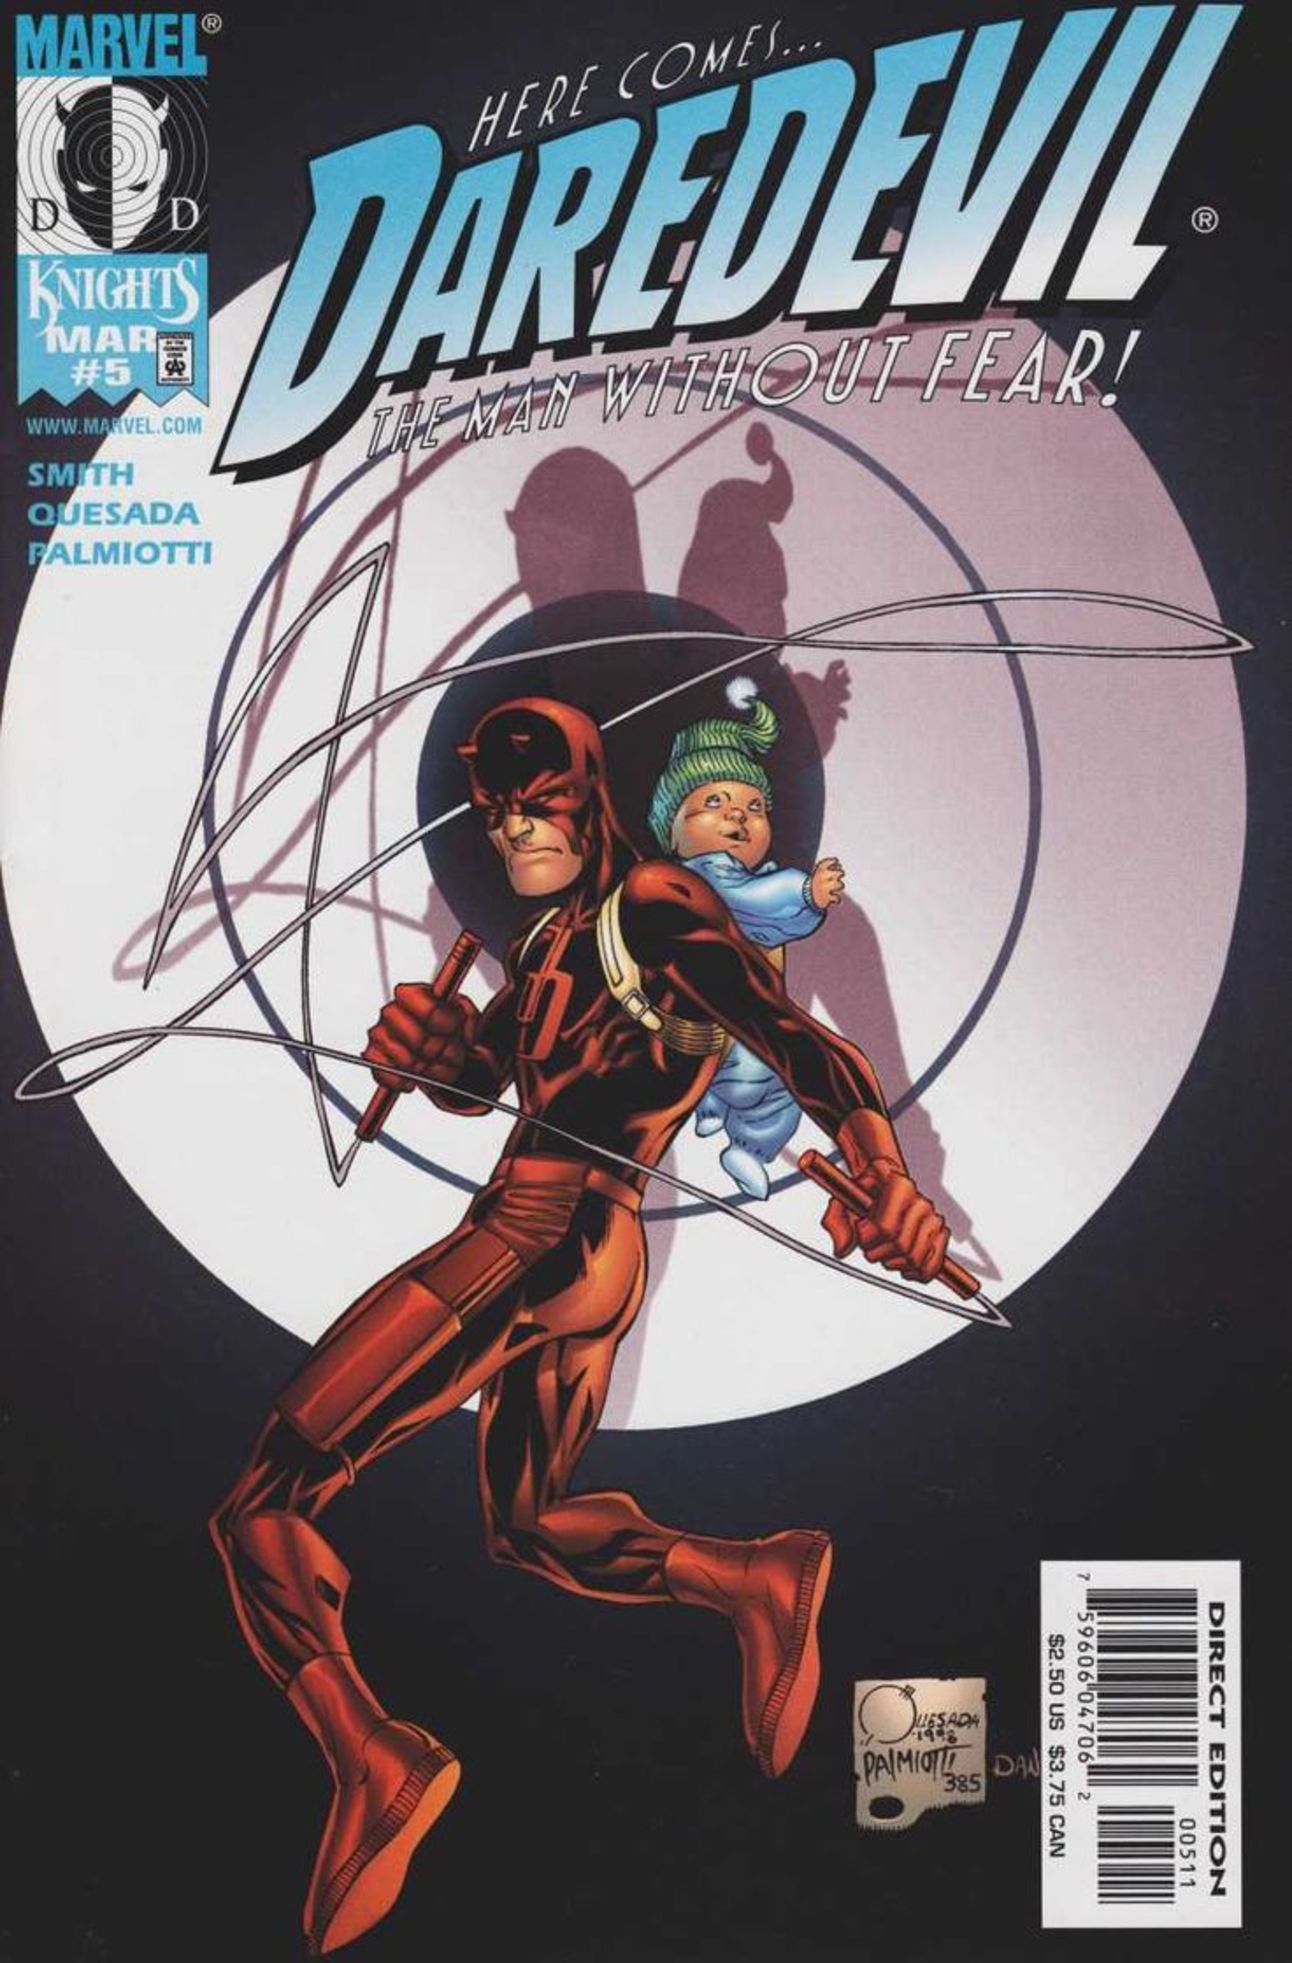 a0379a47bd8958edc79856afed1f4517--daredevil-elektra-comic-book-covers.jpg